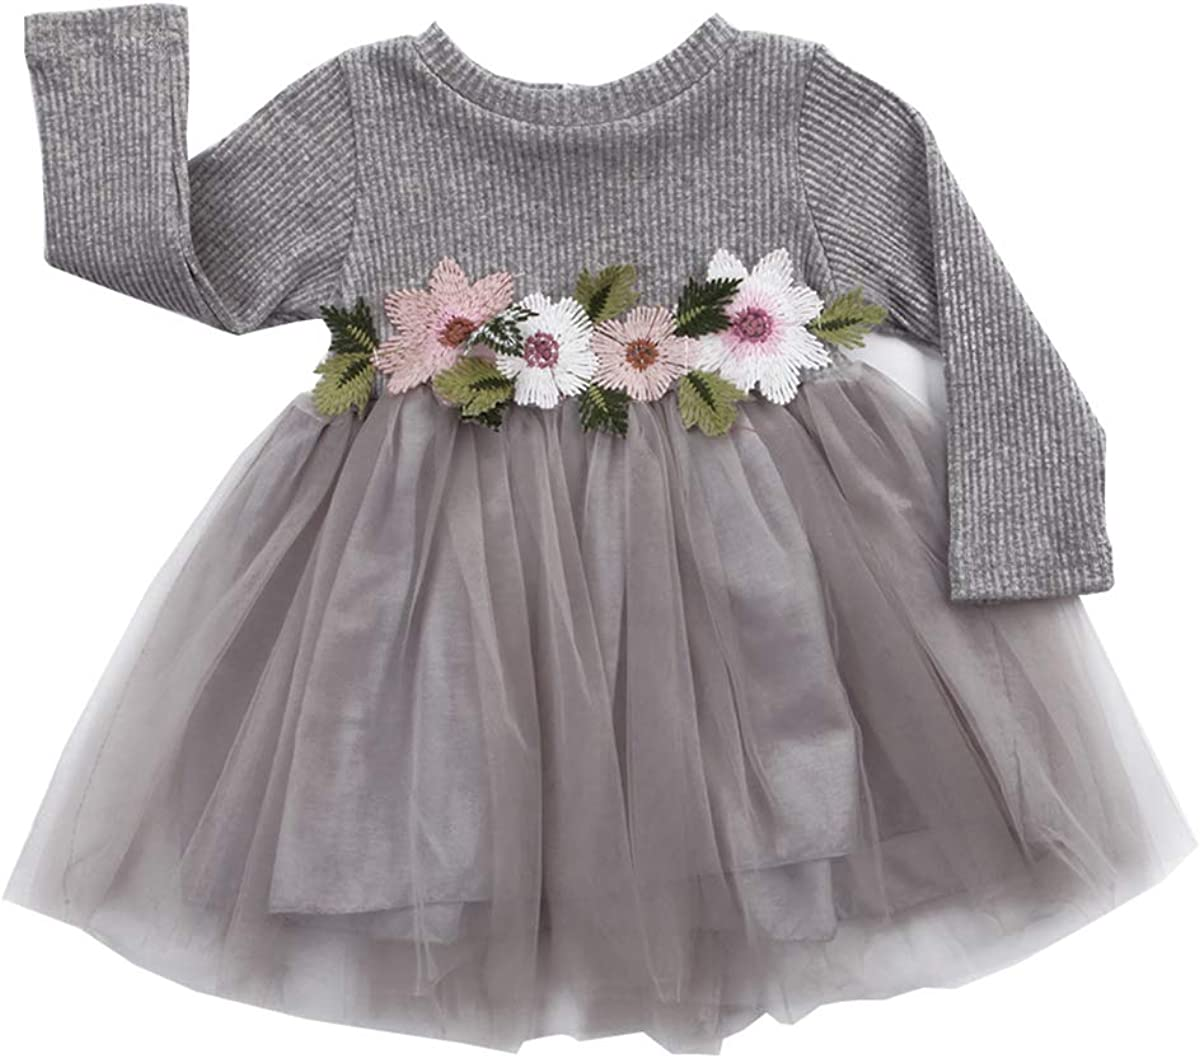 Mubineo Max 87% OFF Toddler Girl Long Sleeve Shipping included Flower Infant Baby Knit Dresses